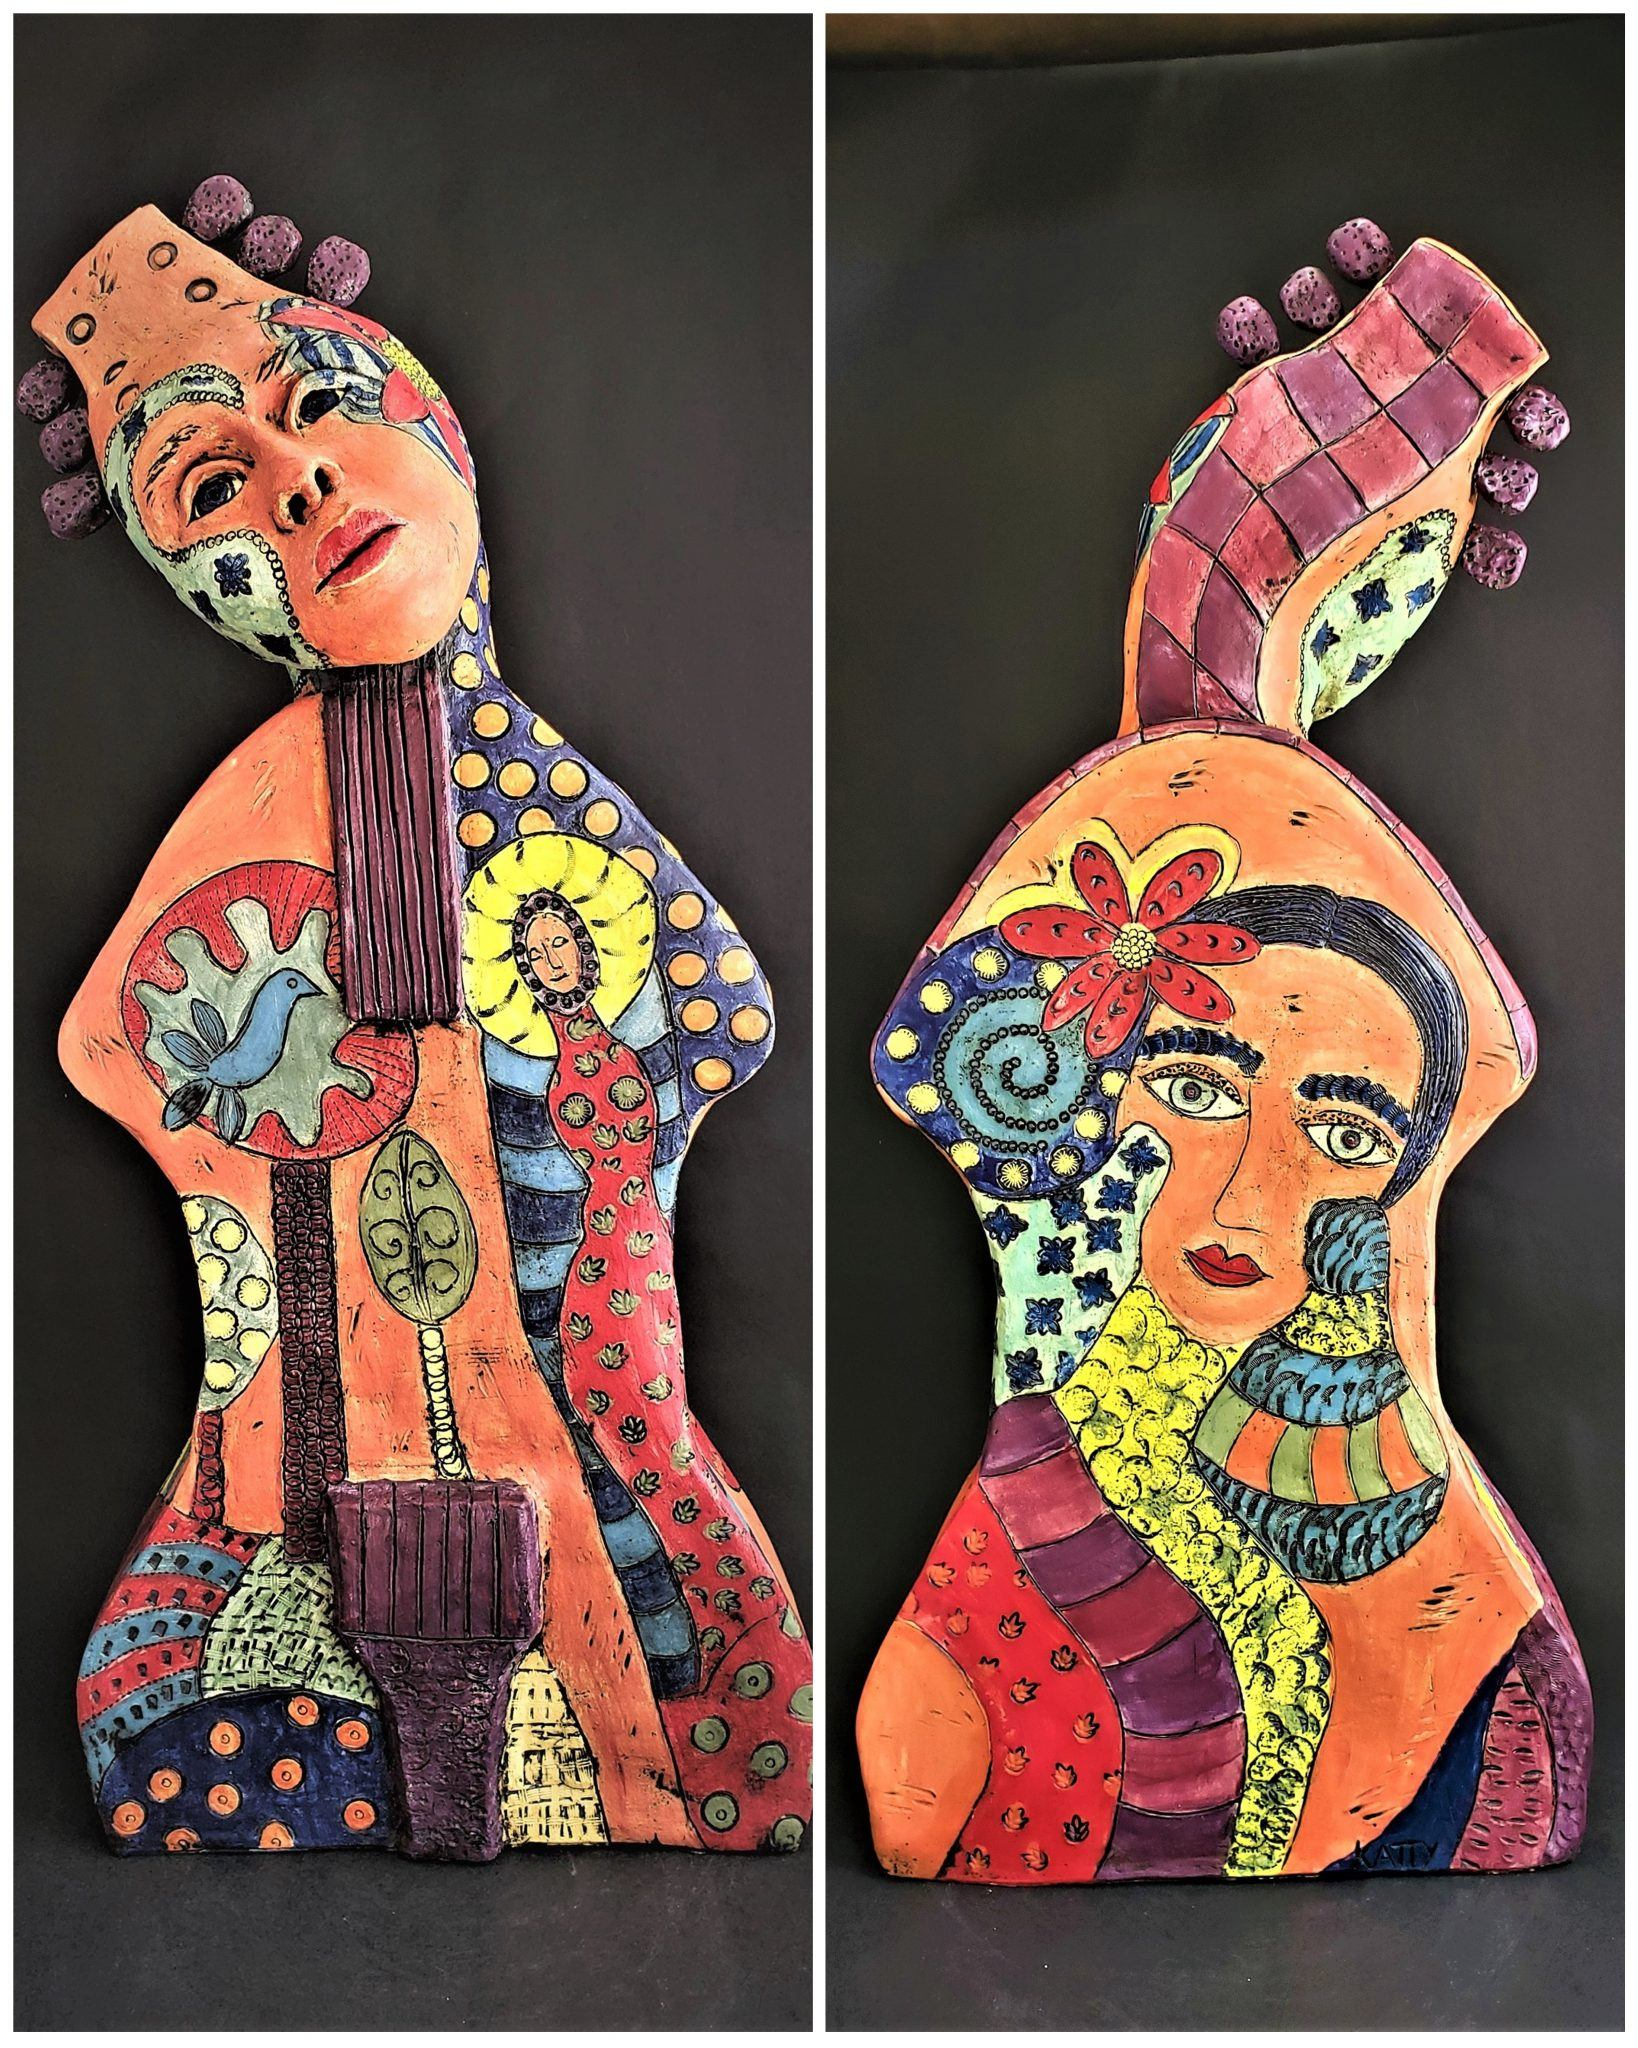 La Guiterra collage